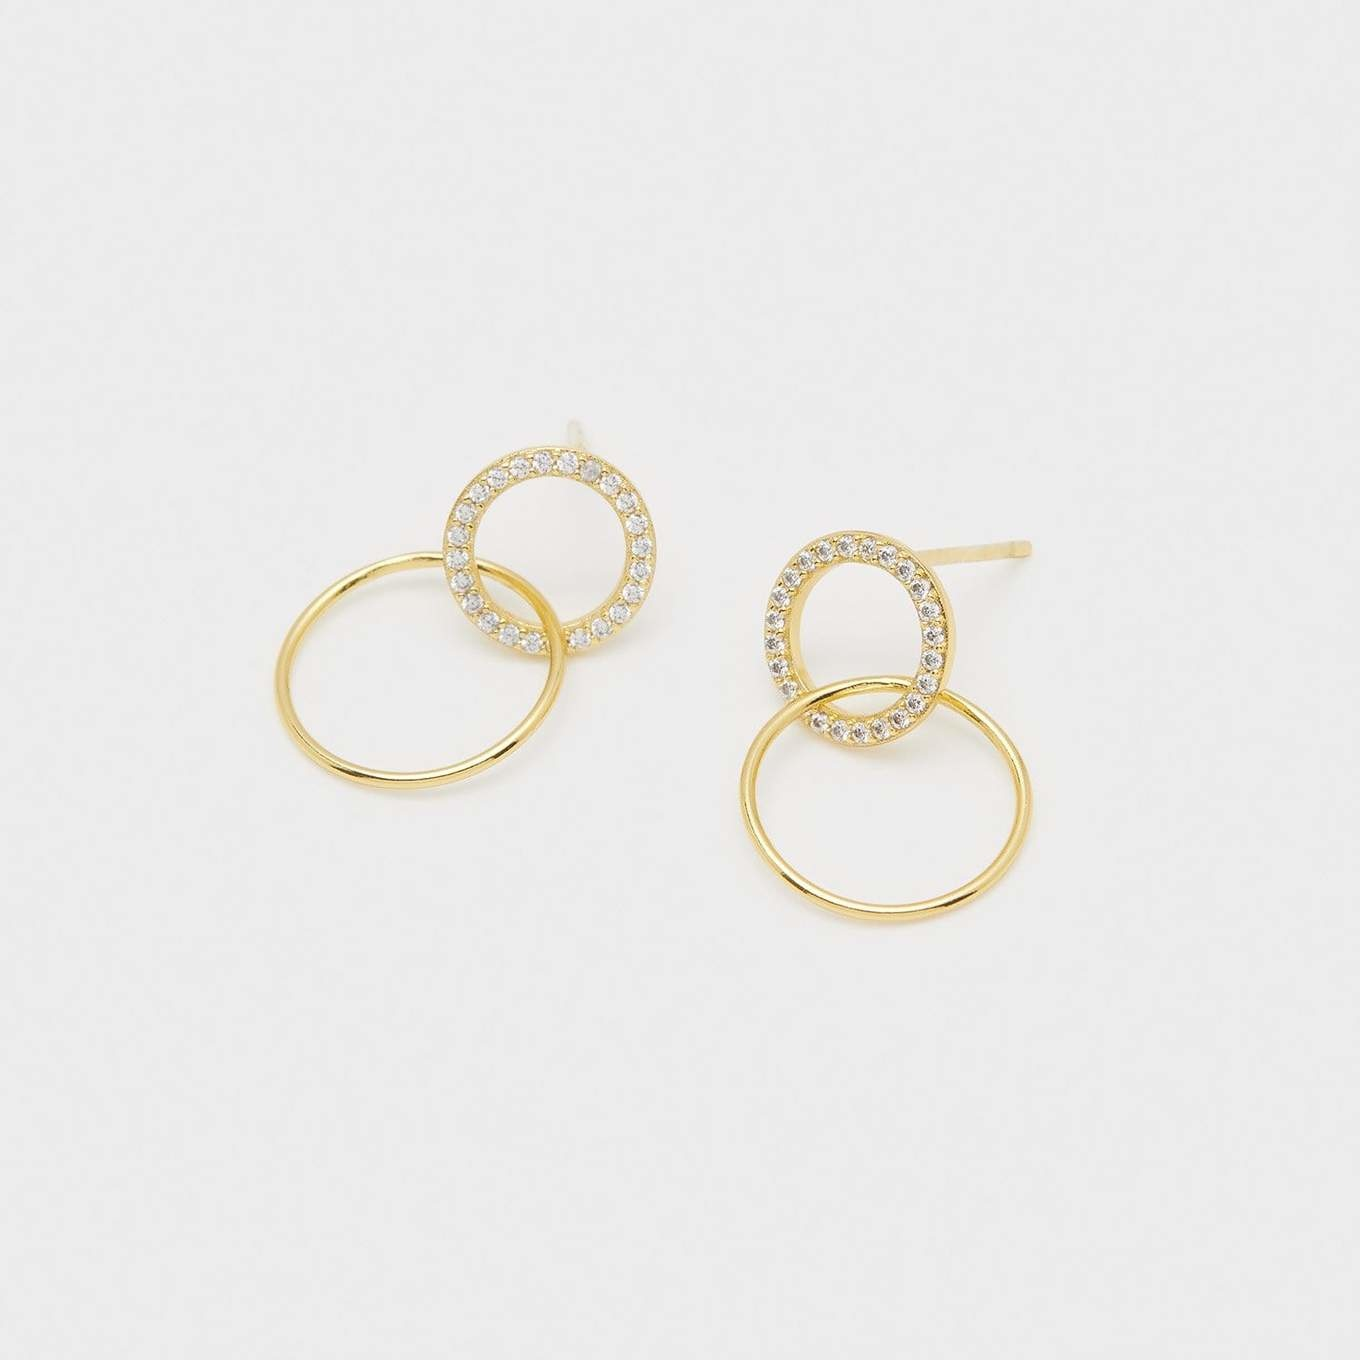 Gorjana Balboa Interlocking Studs